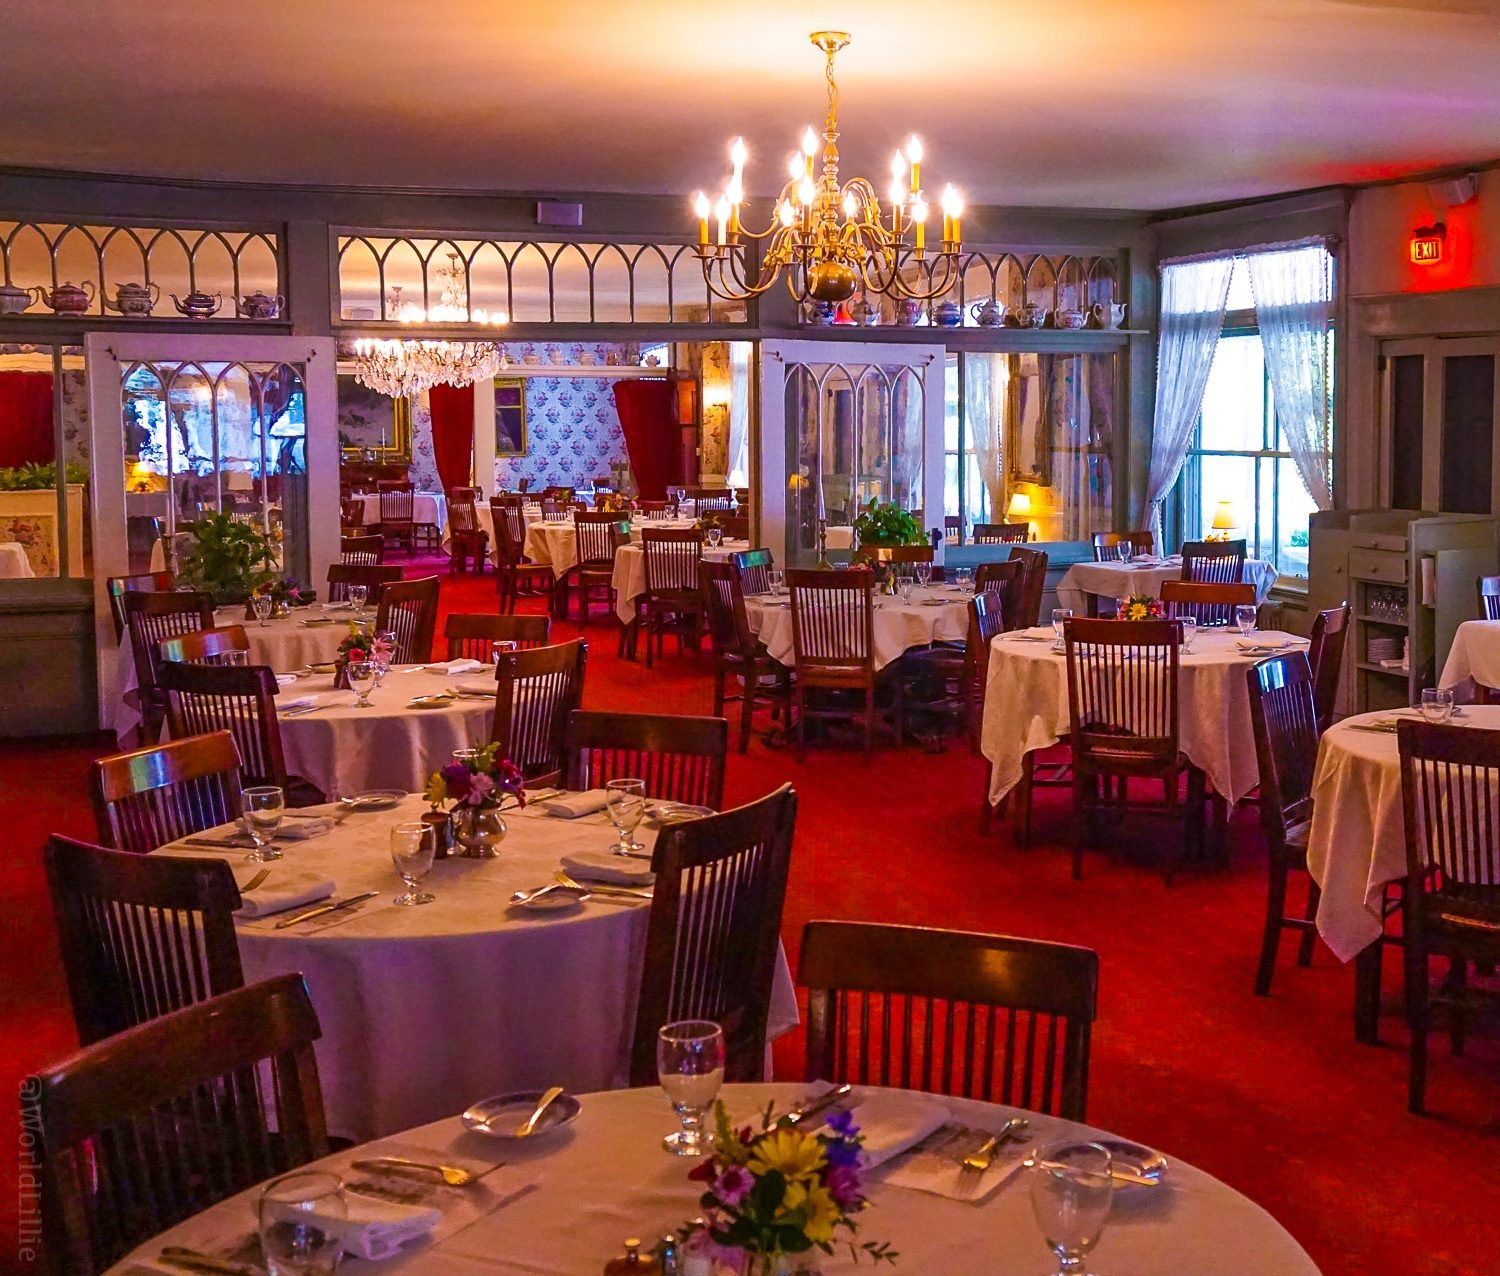 Red carpet in the Main Dining Room of the Red Lion Inn, Stockbridge, MA with chandeliers!